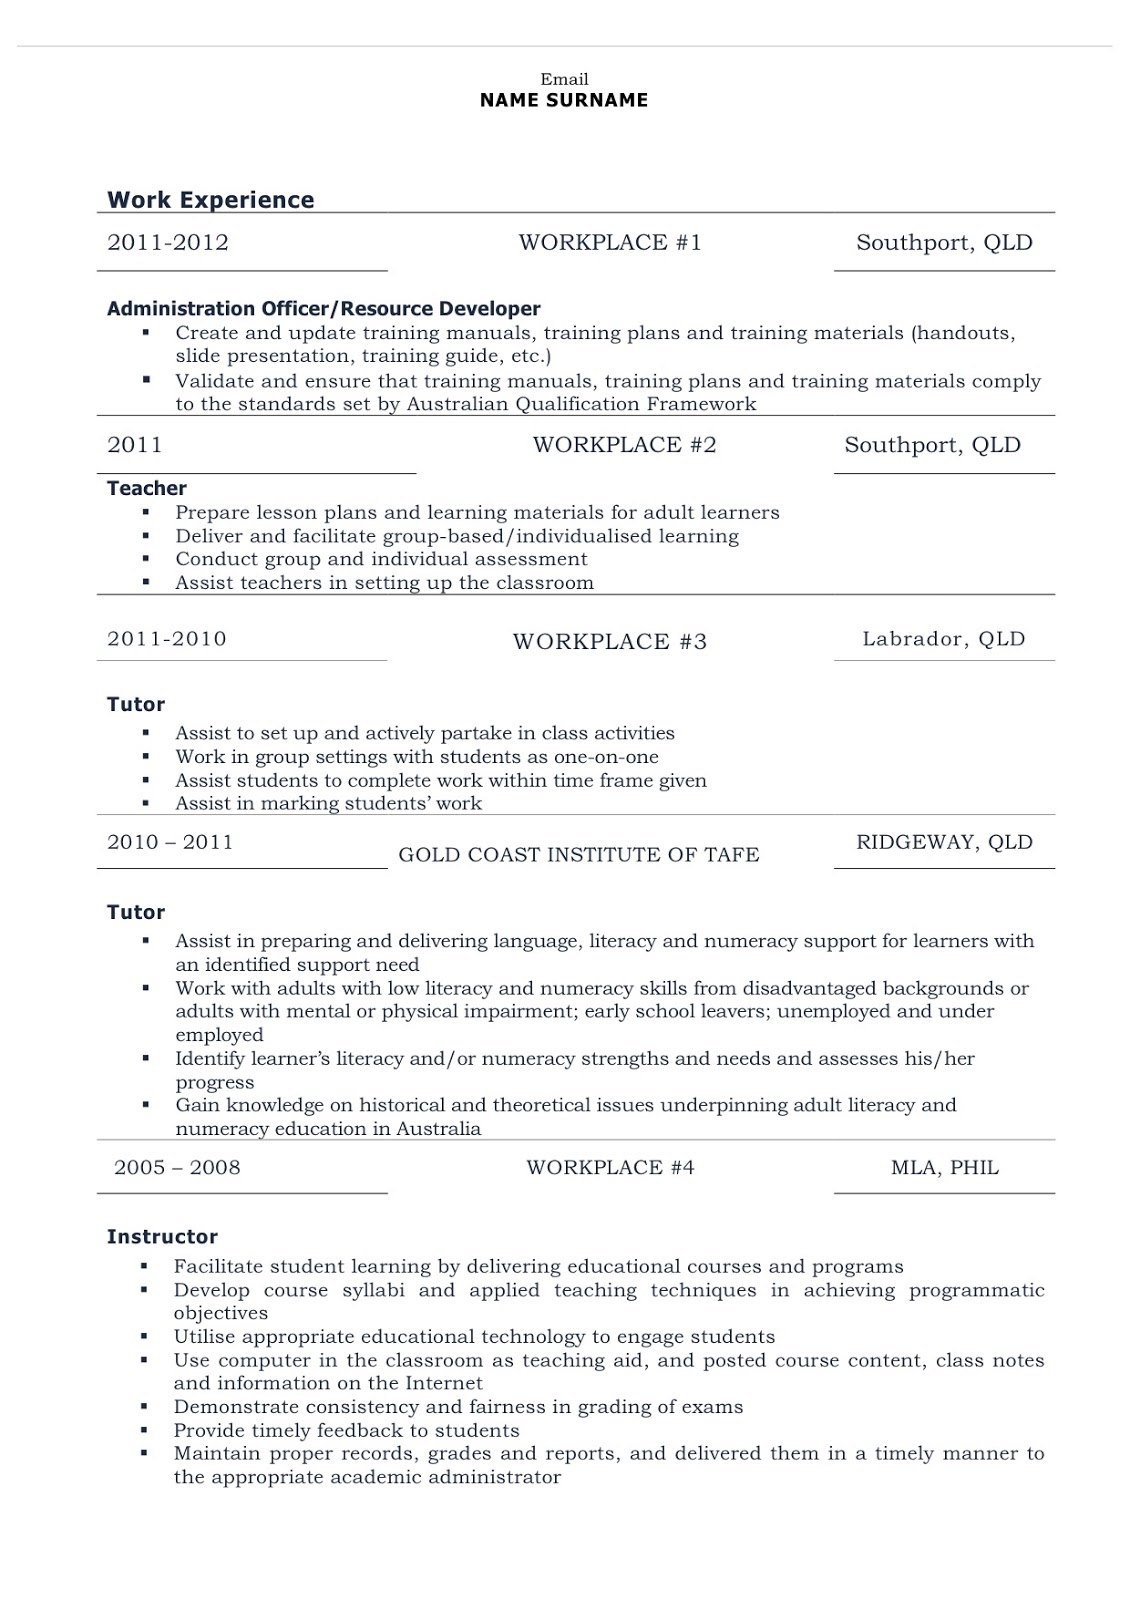 Combination Resumes Job Seek 101 How To Write A Resume Combination Resume